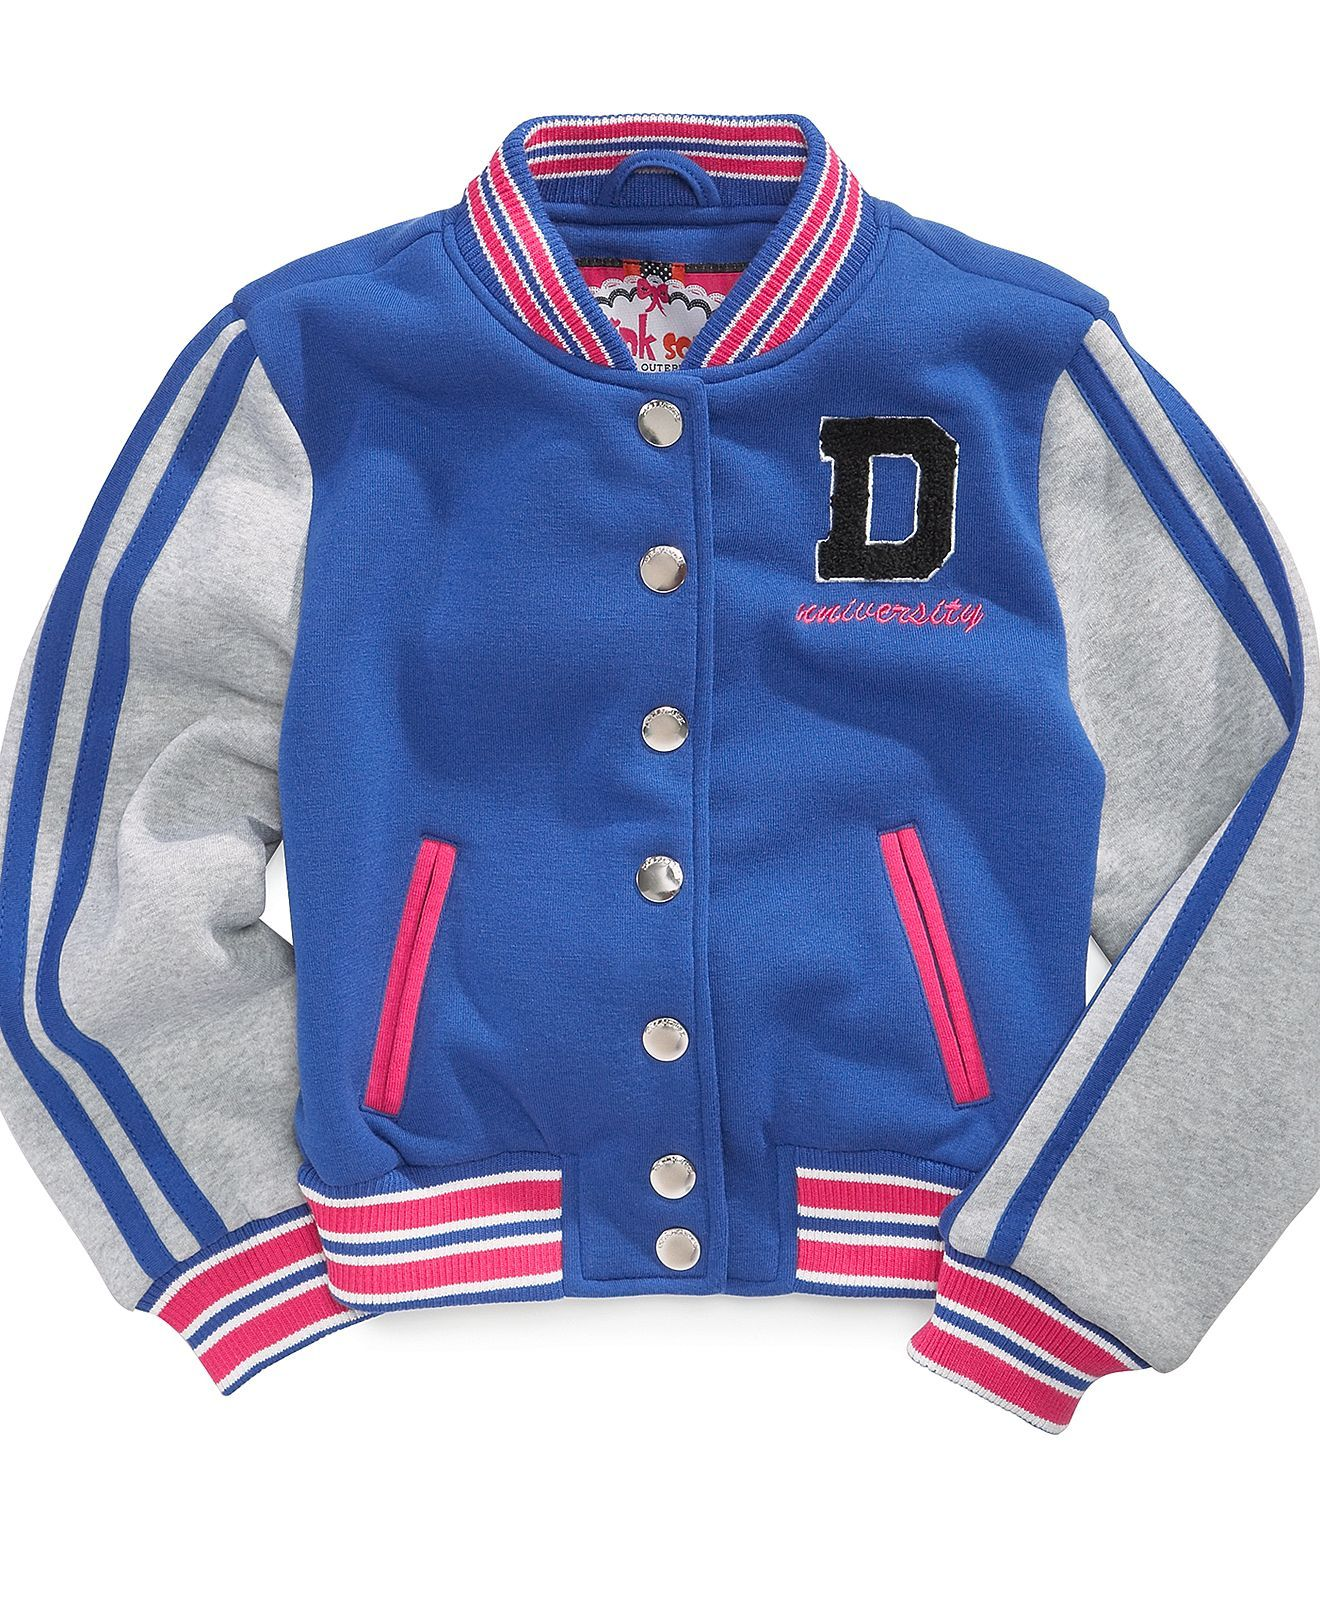 b209a2675 Dollhouse Kids Jacket